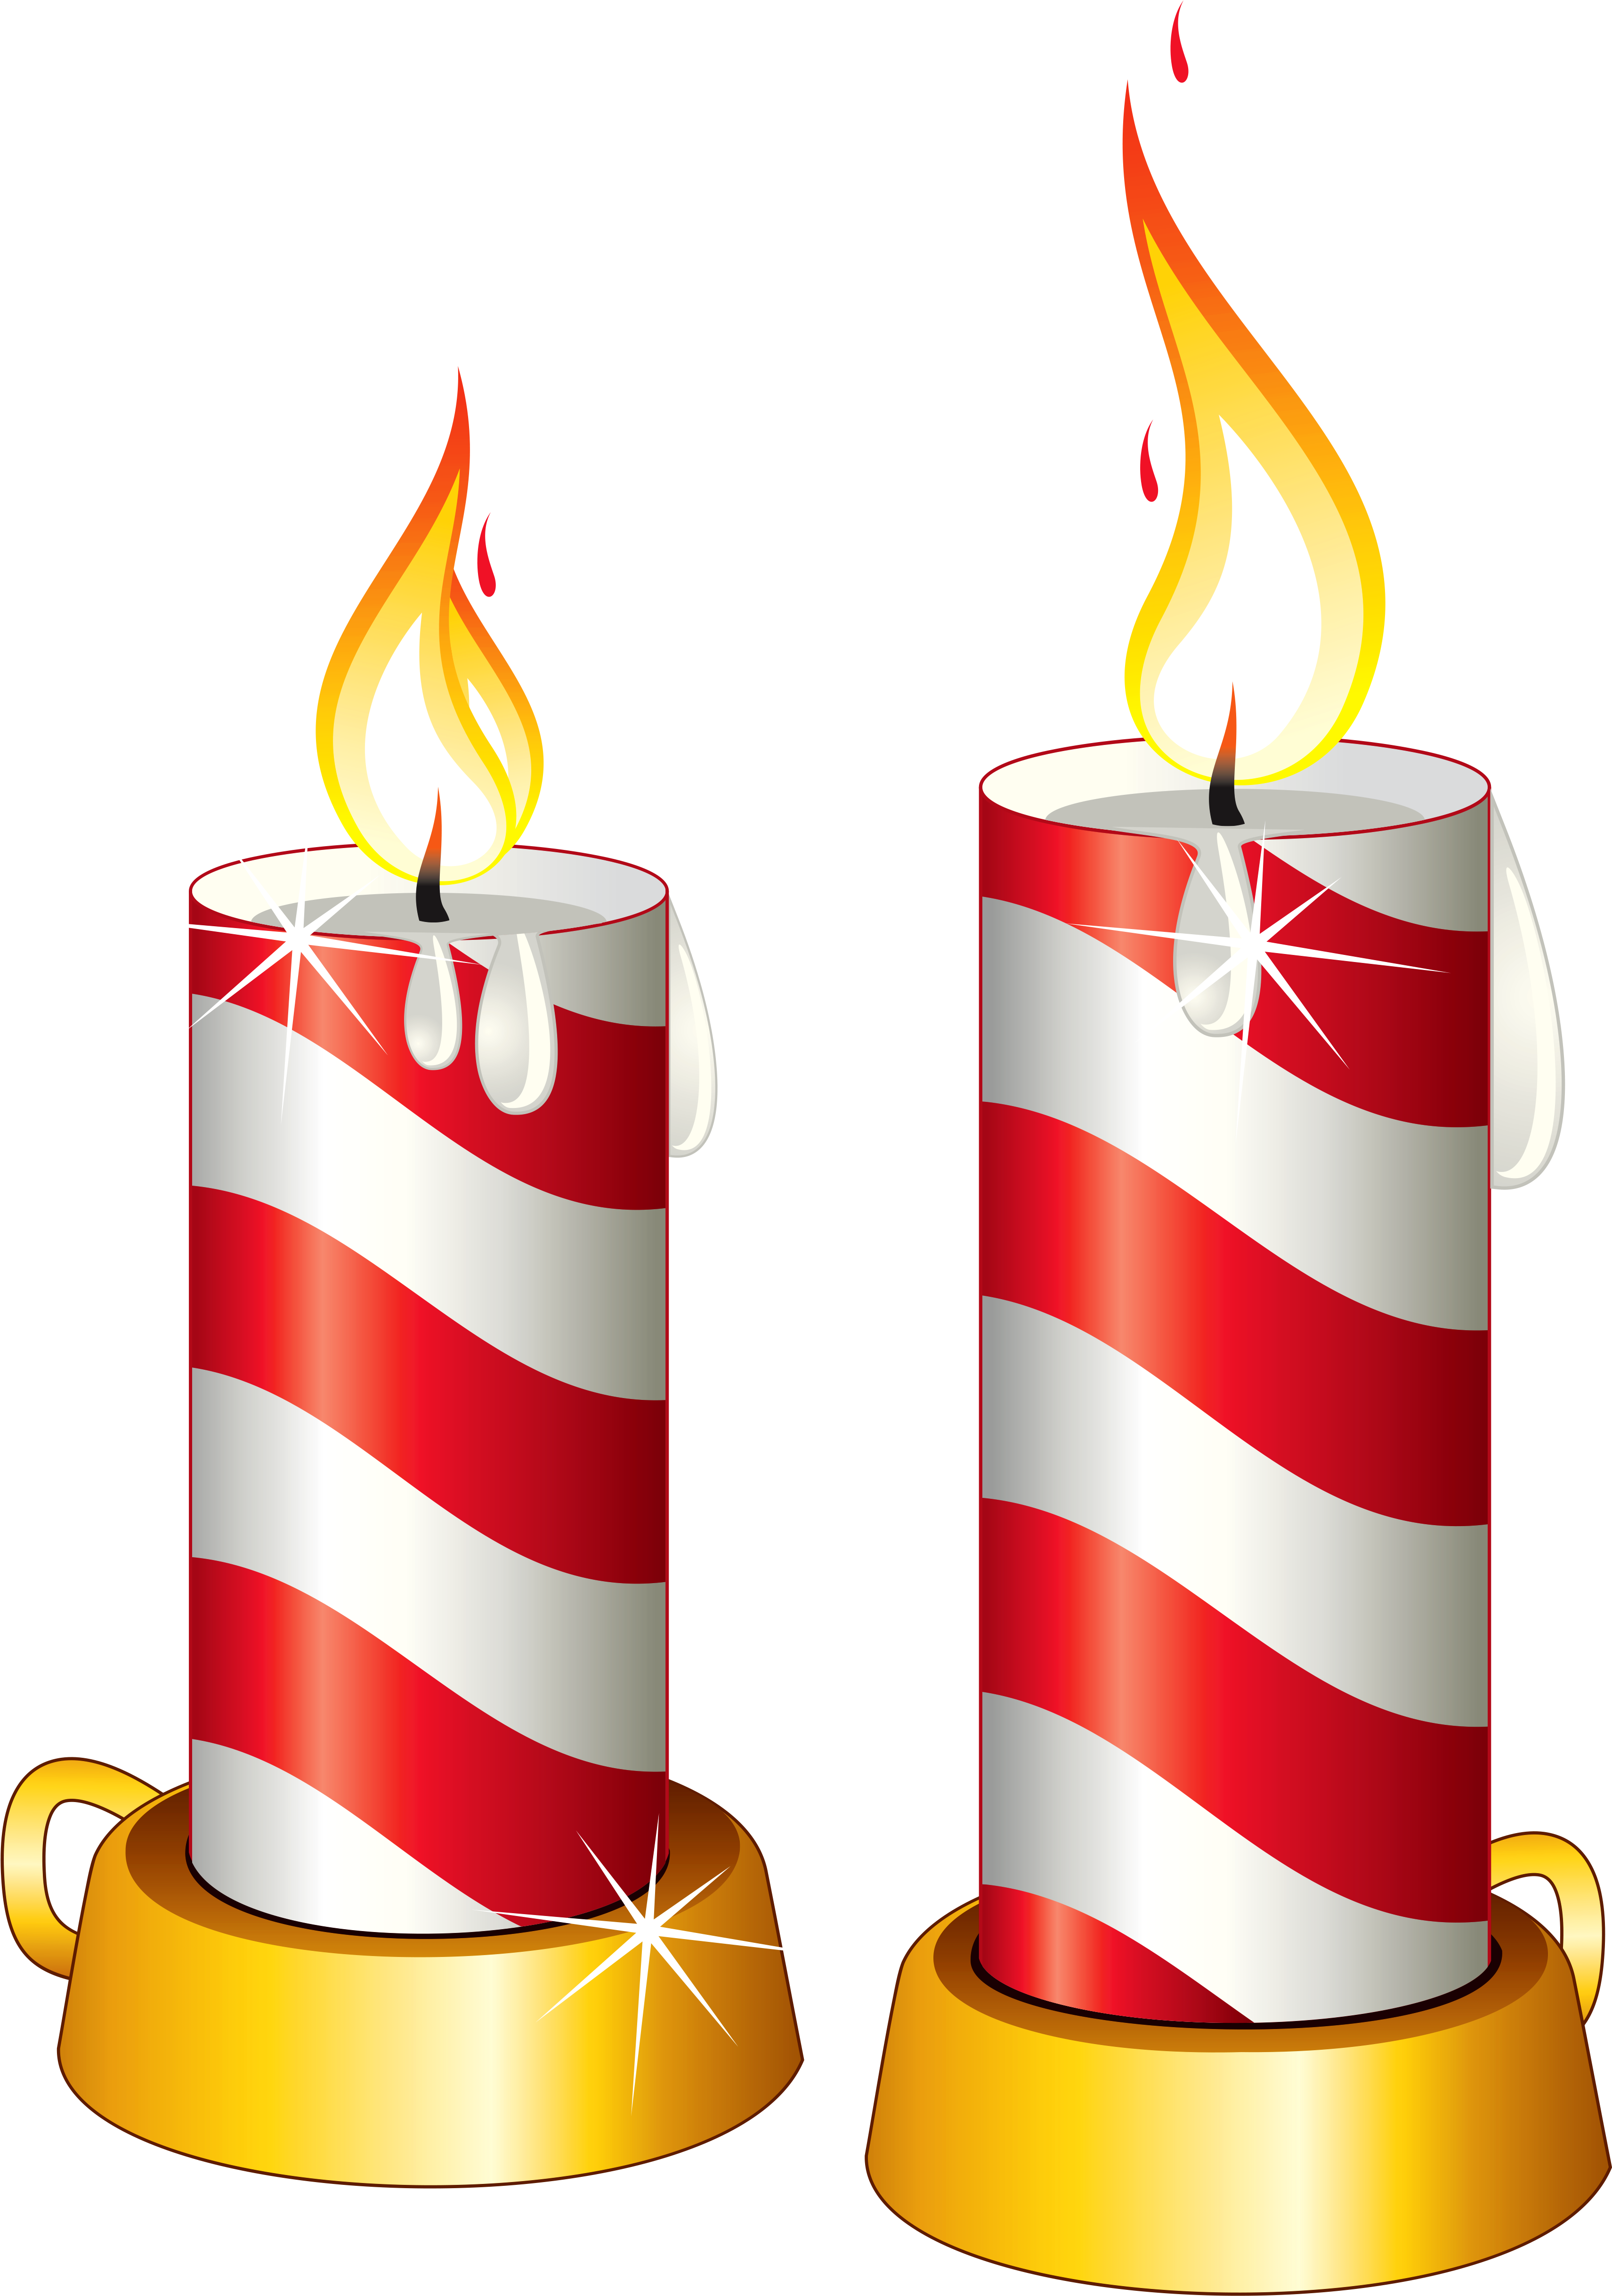 5 candle png. Download transparent christmas candles